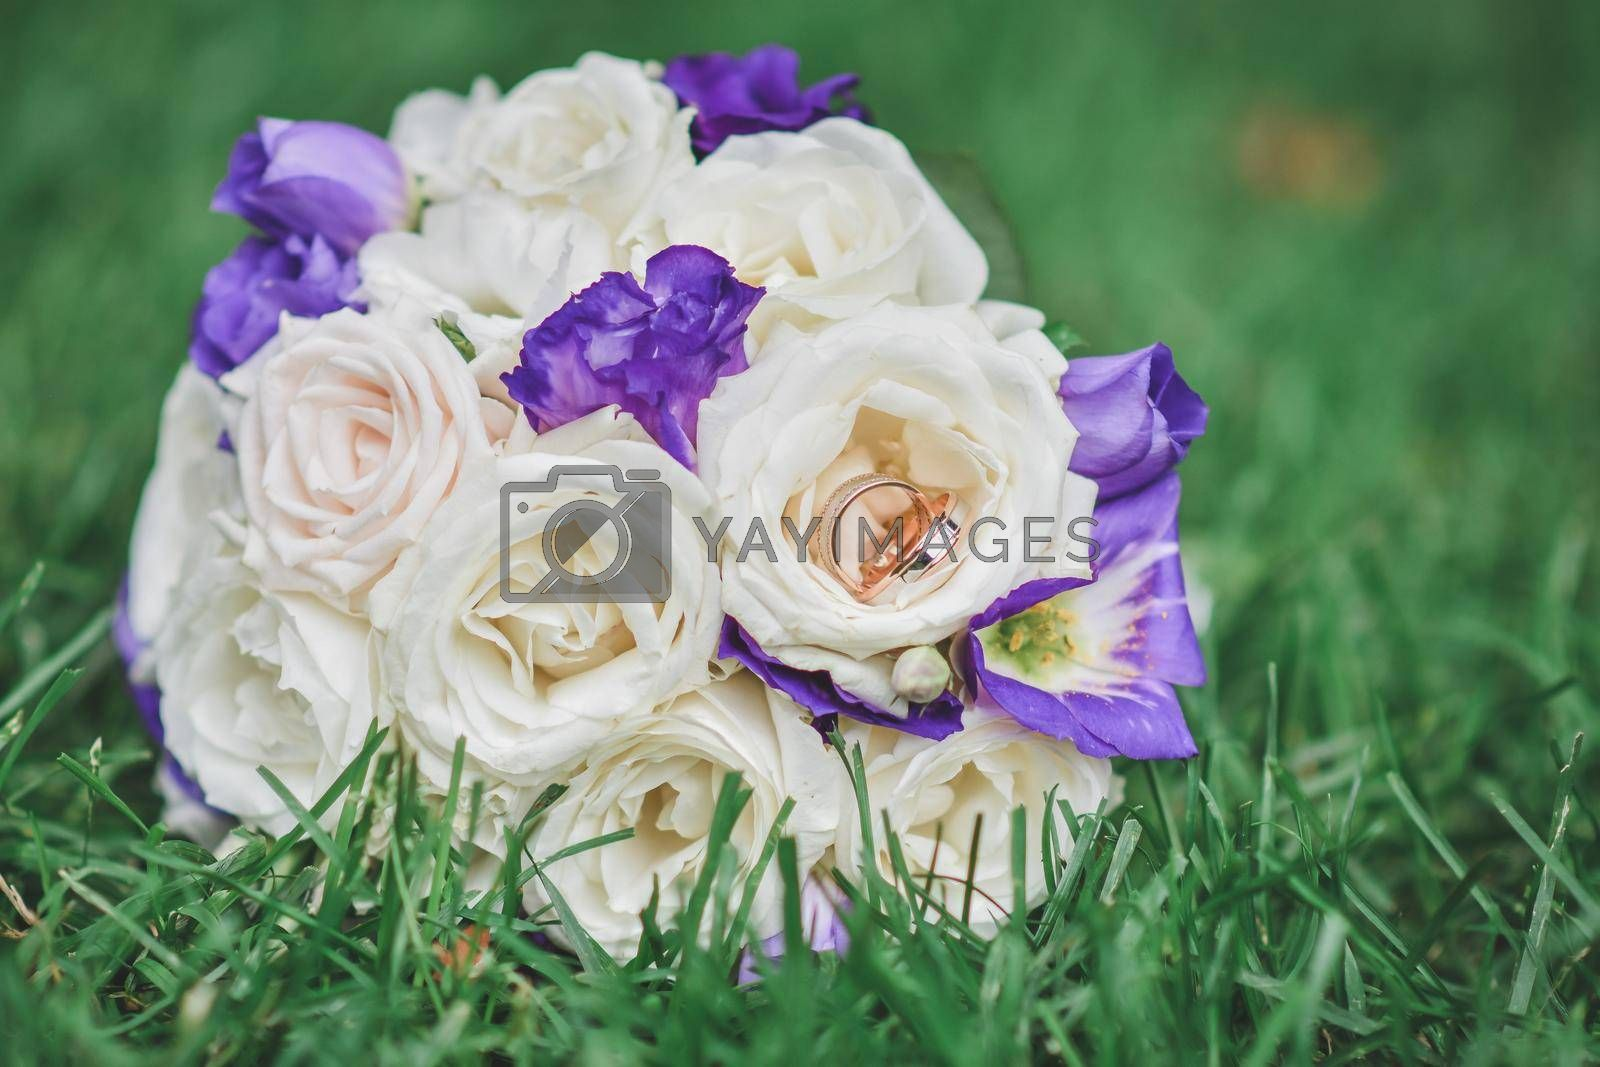 A small bouquet with two wedding rings on the green grass. Selective defocusing.